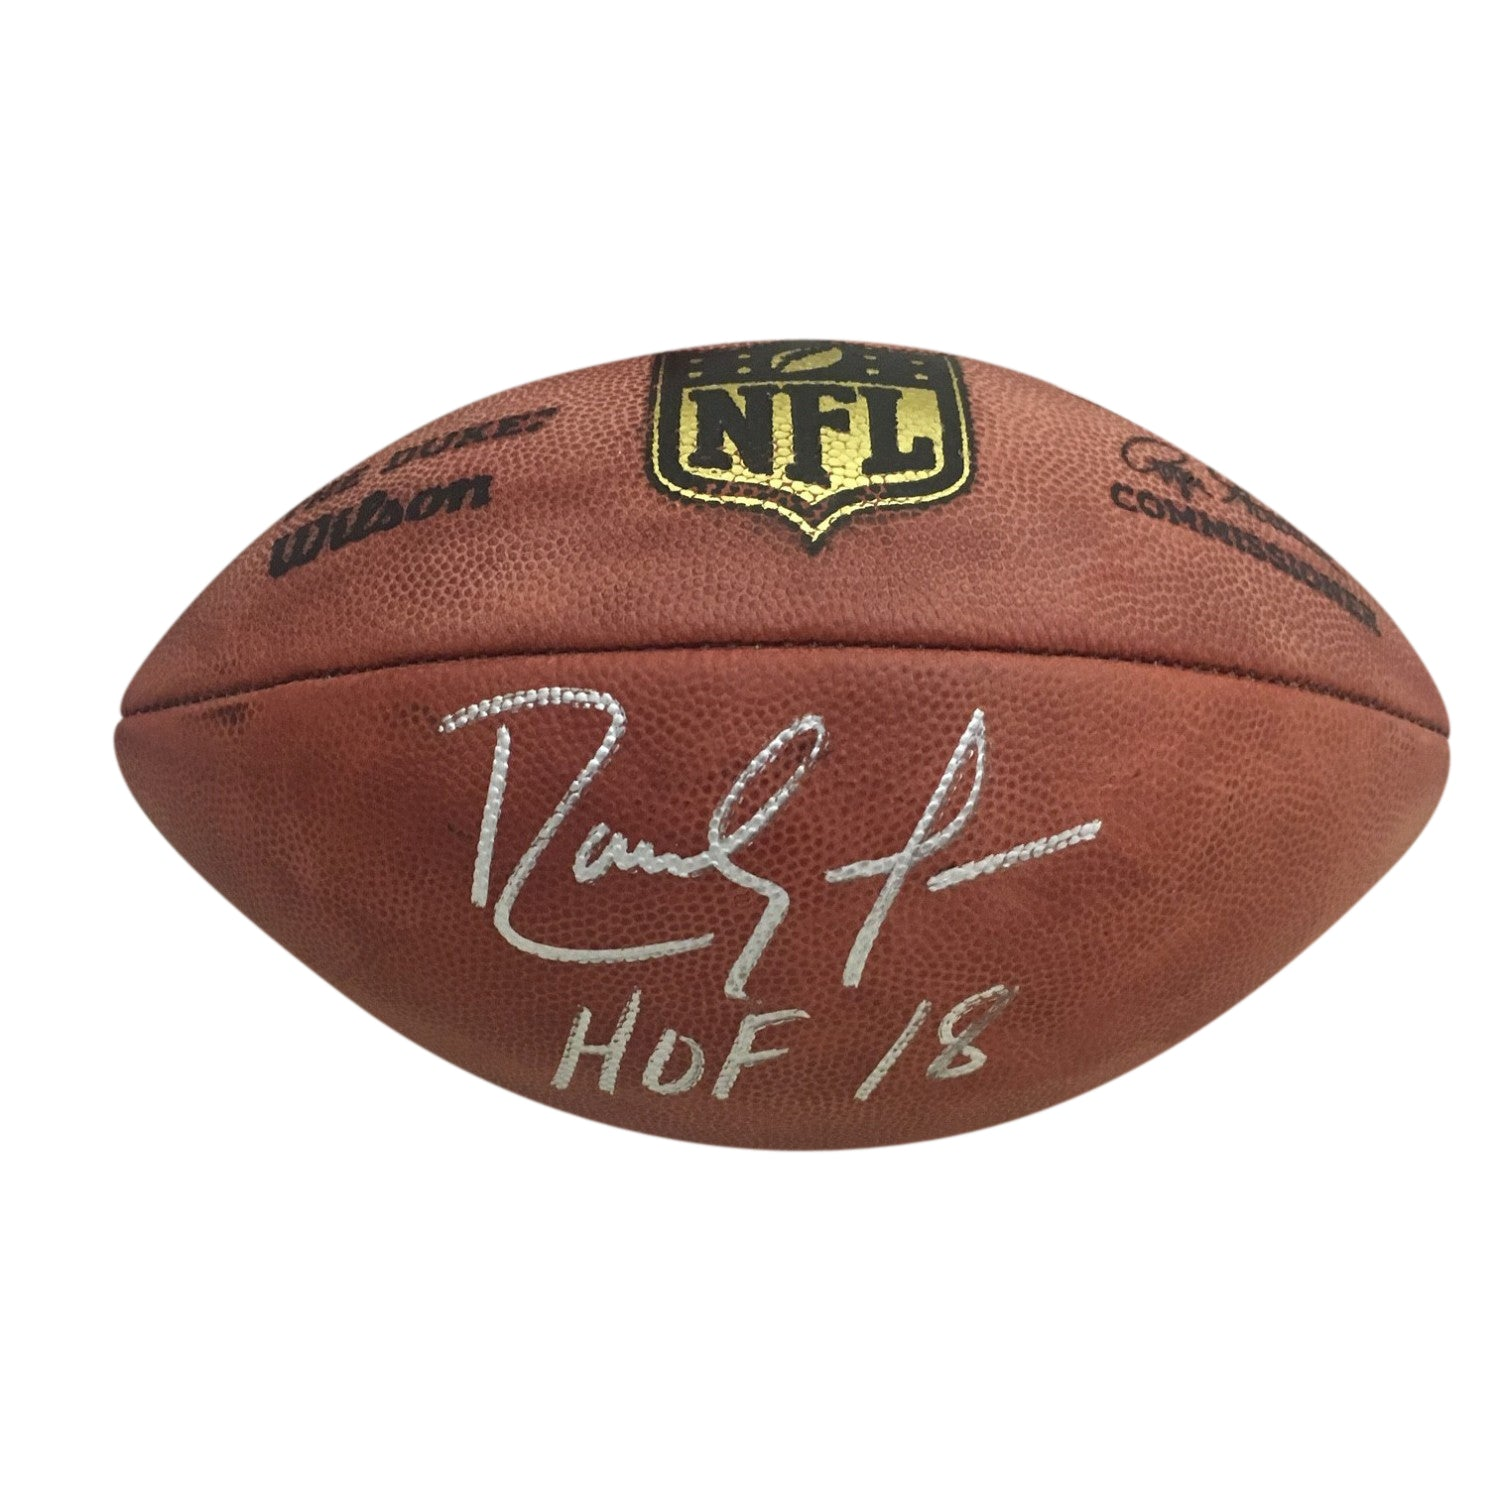 Randy Moss Autographed Minnesota Vikings Hall of Fame HOF 18 Signed NFL Authentic Duke Football Beckett BAS COA-Powers Sports Memorabilia